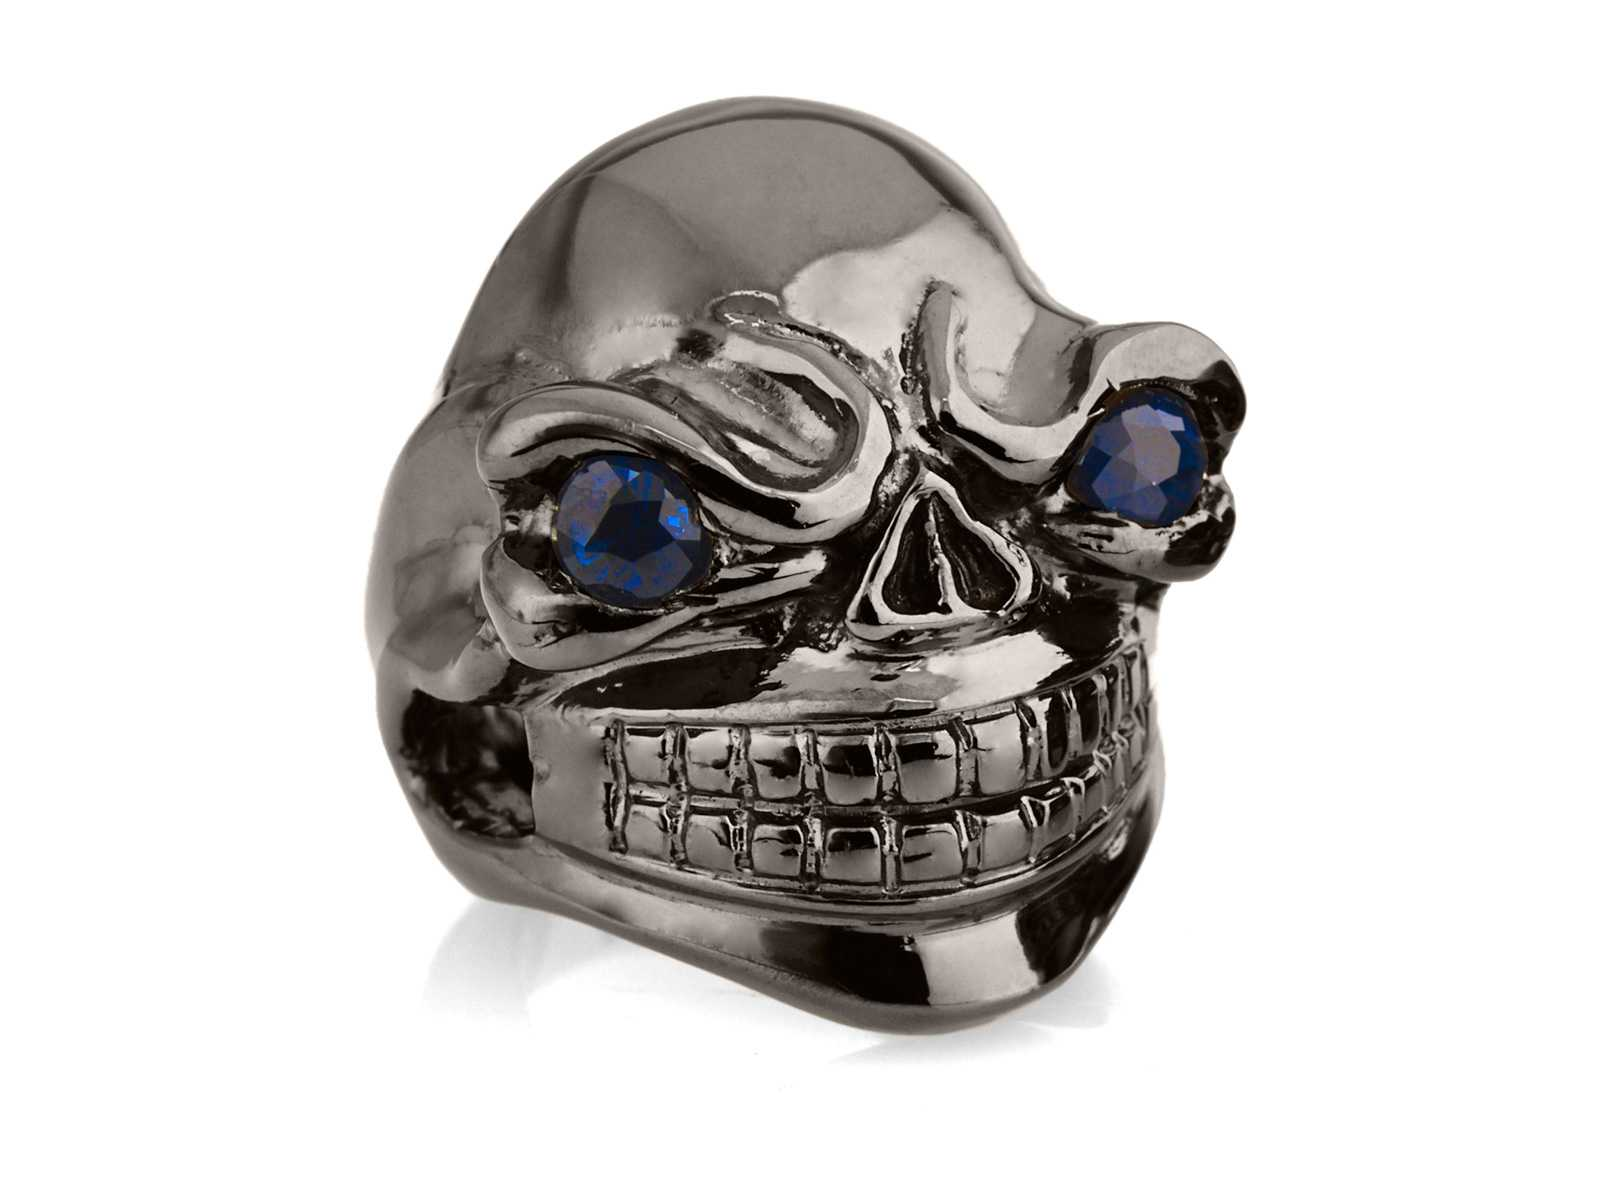 RG324BK-BL Sinister Sid Ring in Sterling Silver with Blue Stones (Black Collection), designed by Steve Soffa